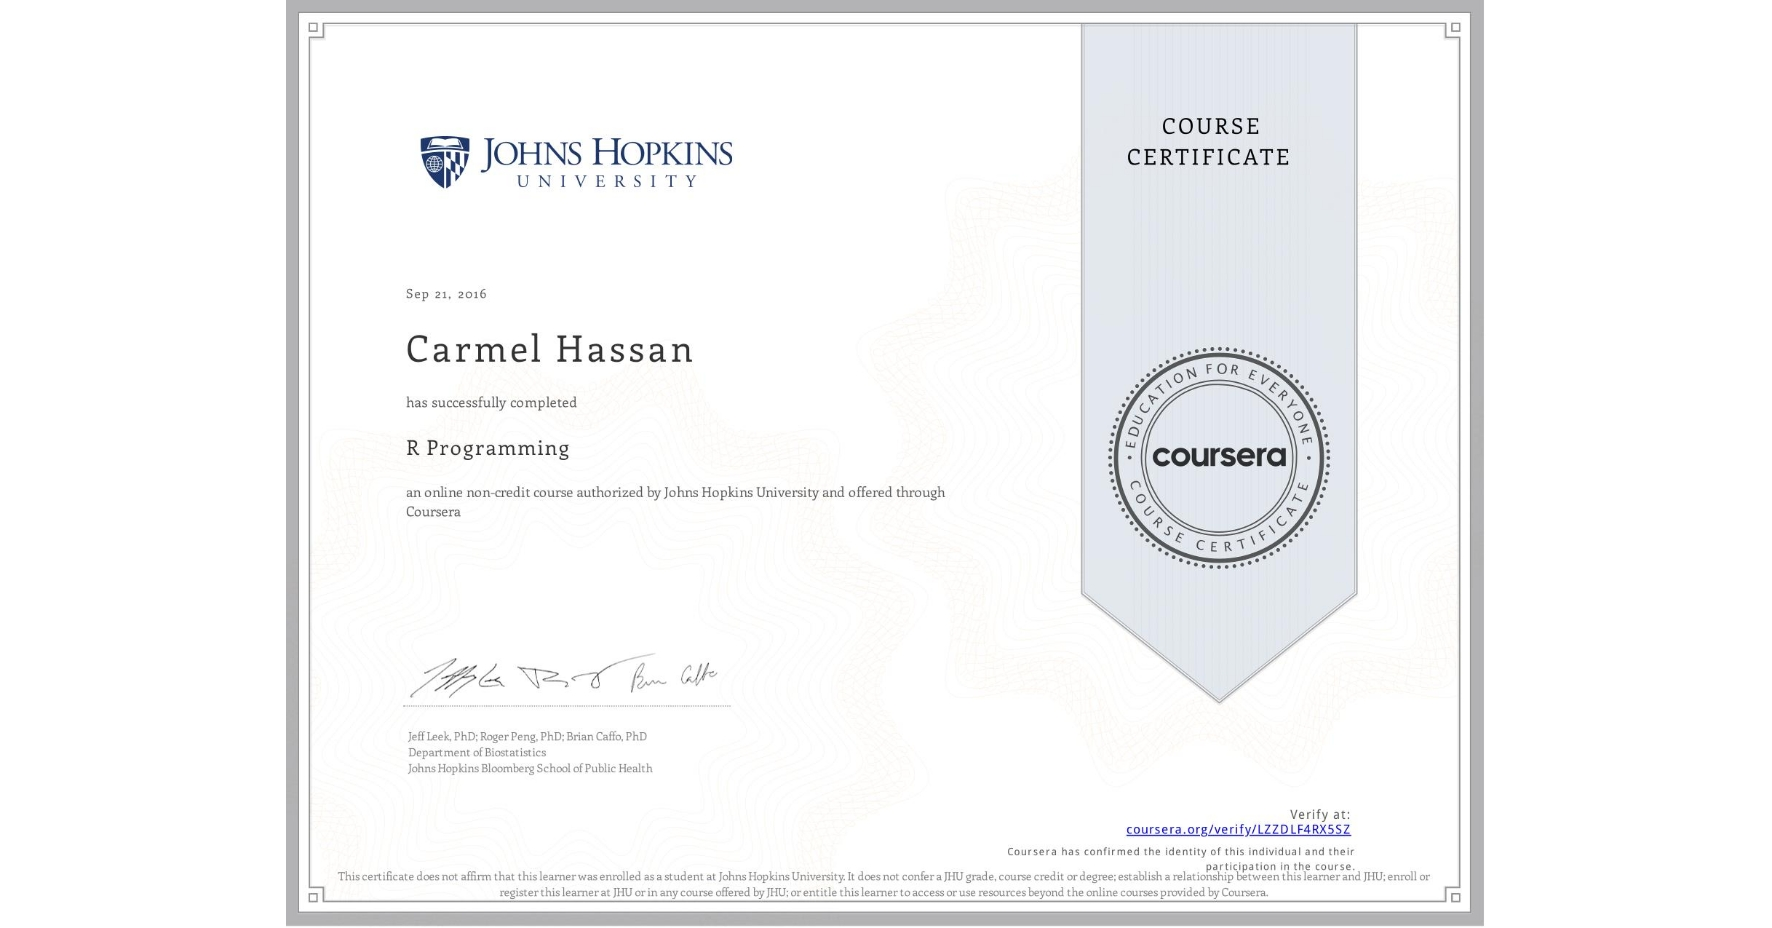 View certificate for Carmel Hassan, R Programming, an online non-credit course authorized by Johns Hopkins University and offered through Coursera